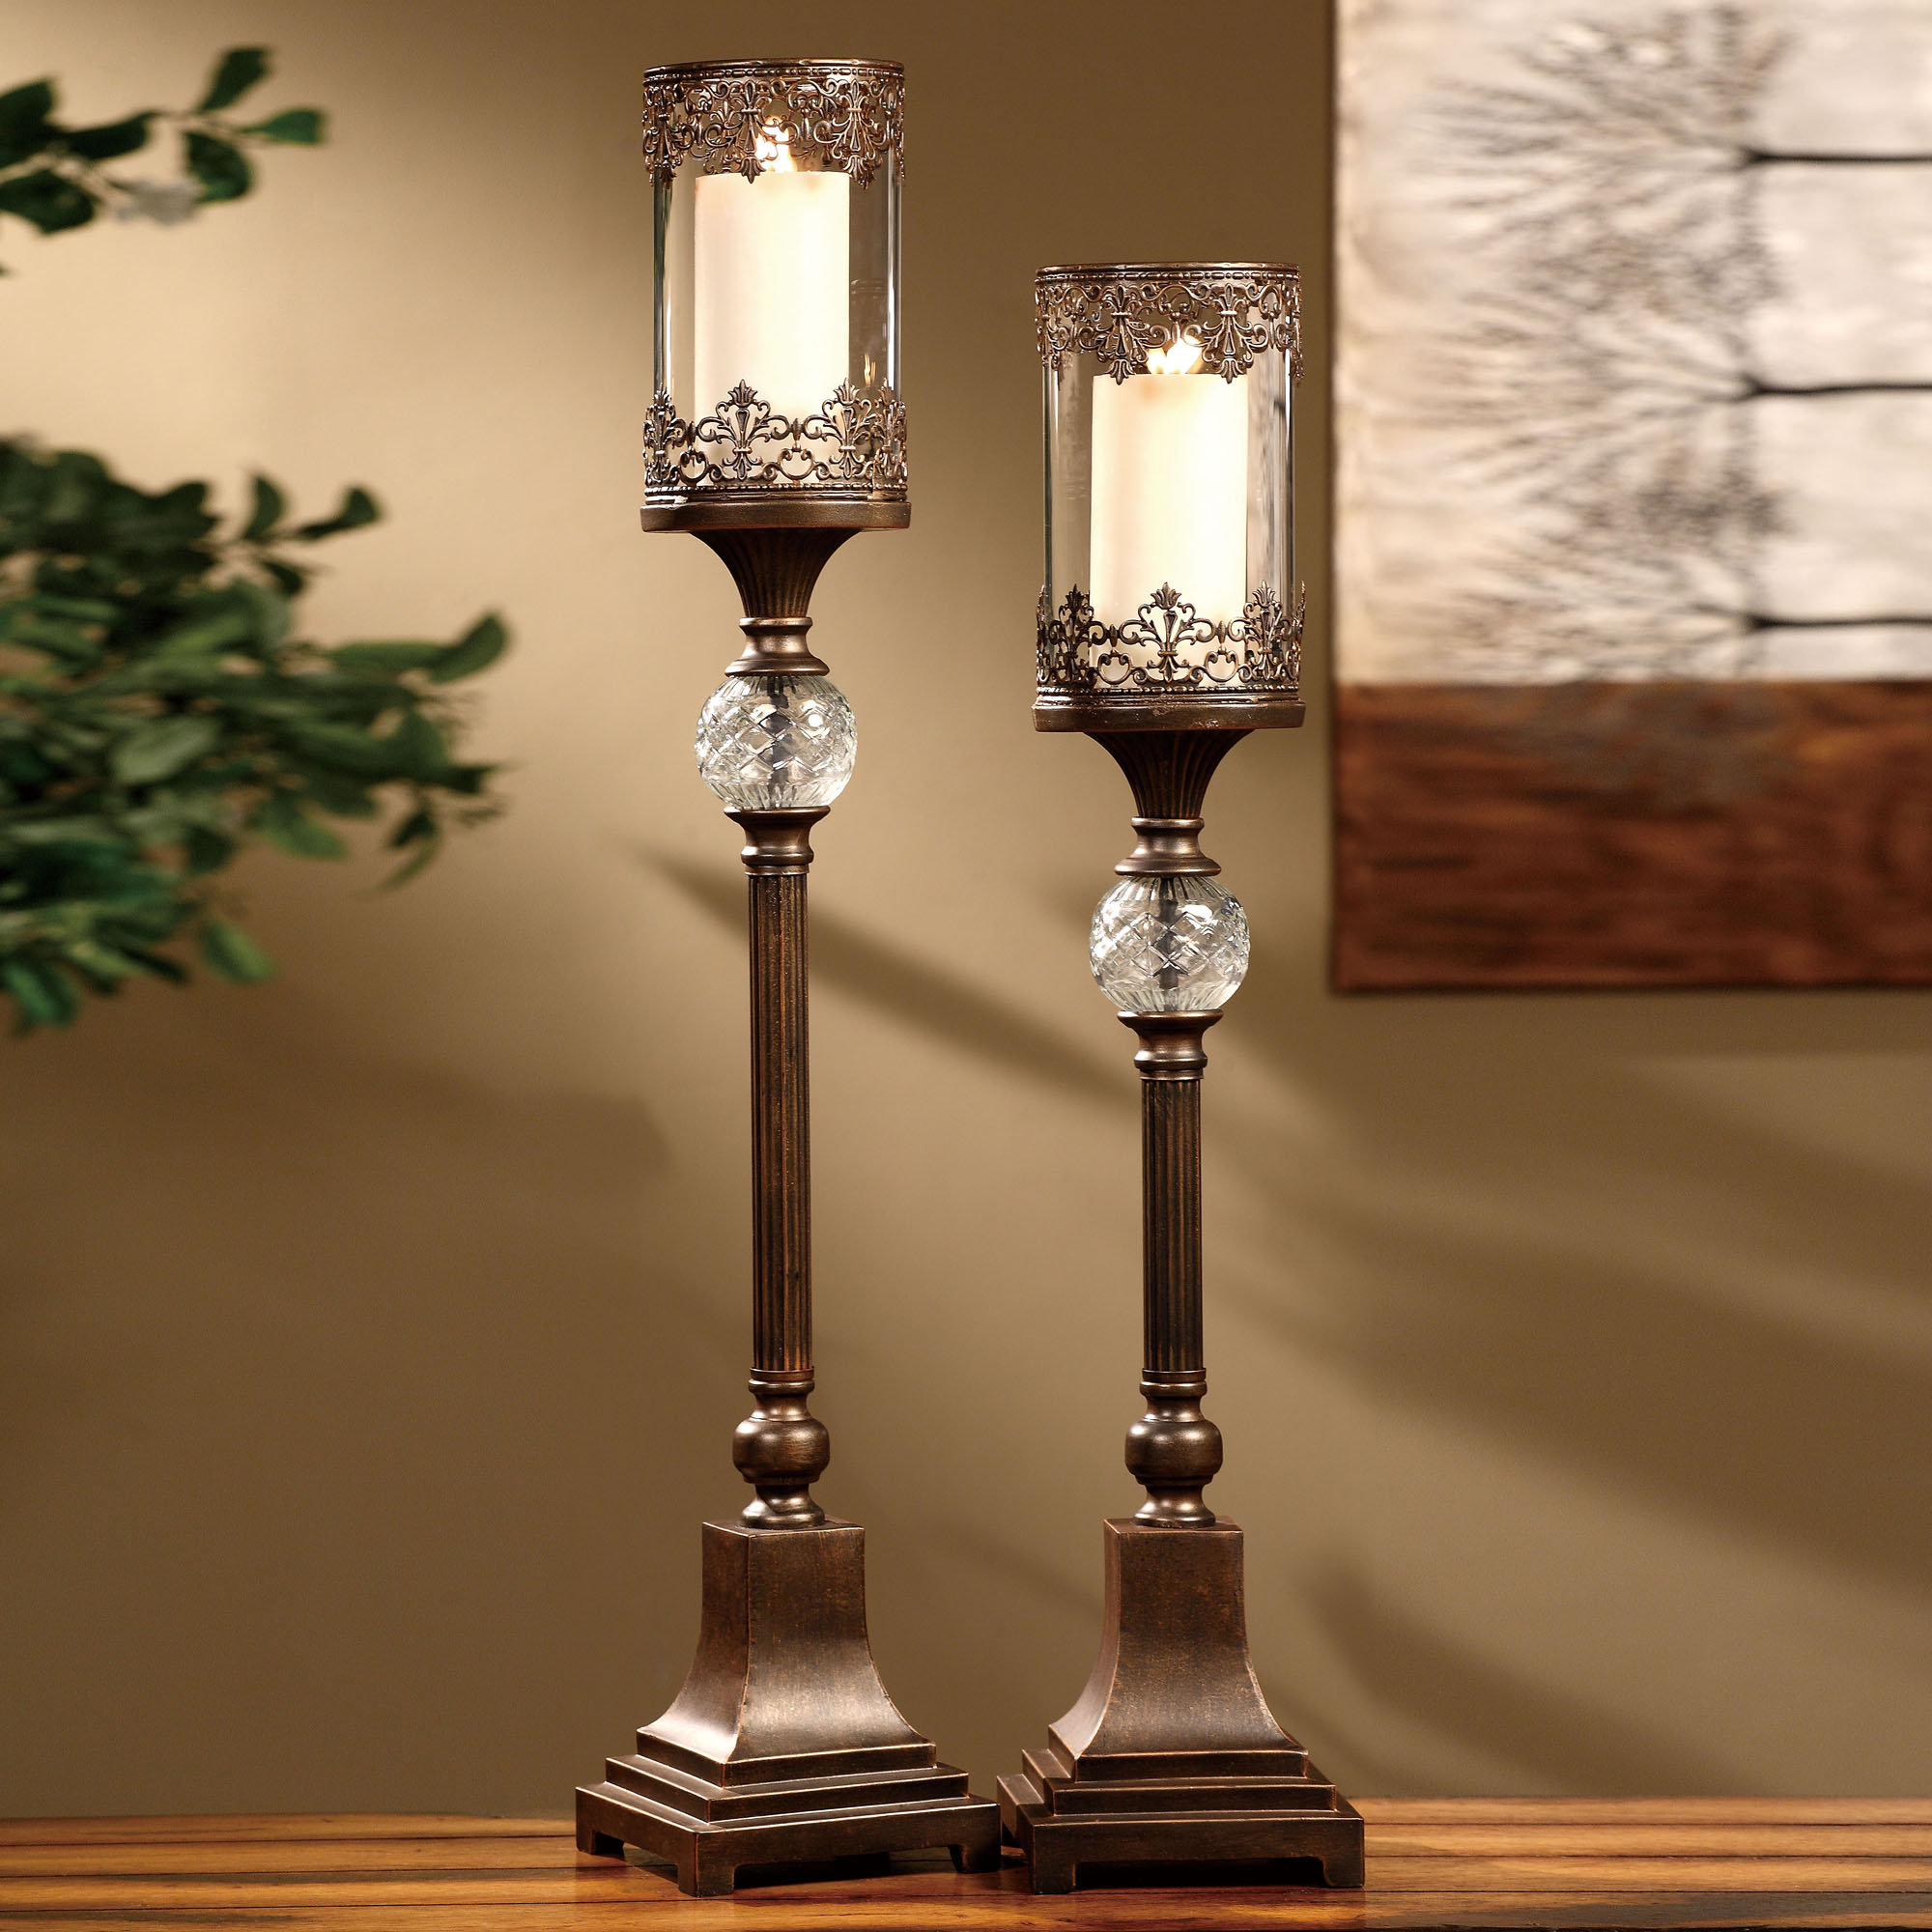 Pillar Candle Holders for Fireplace